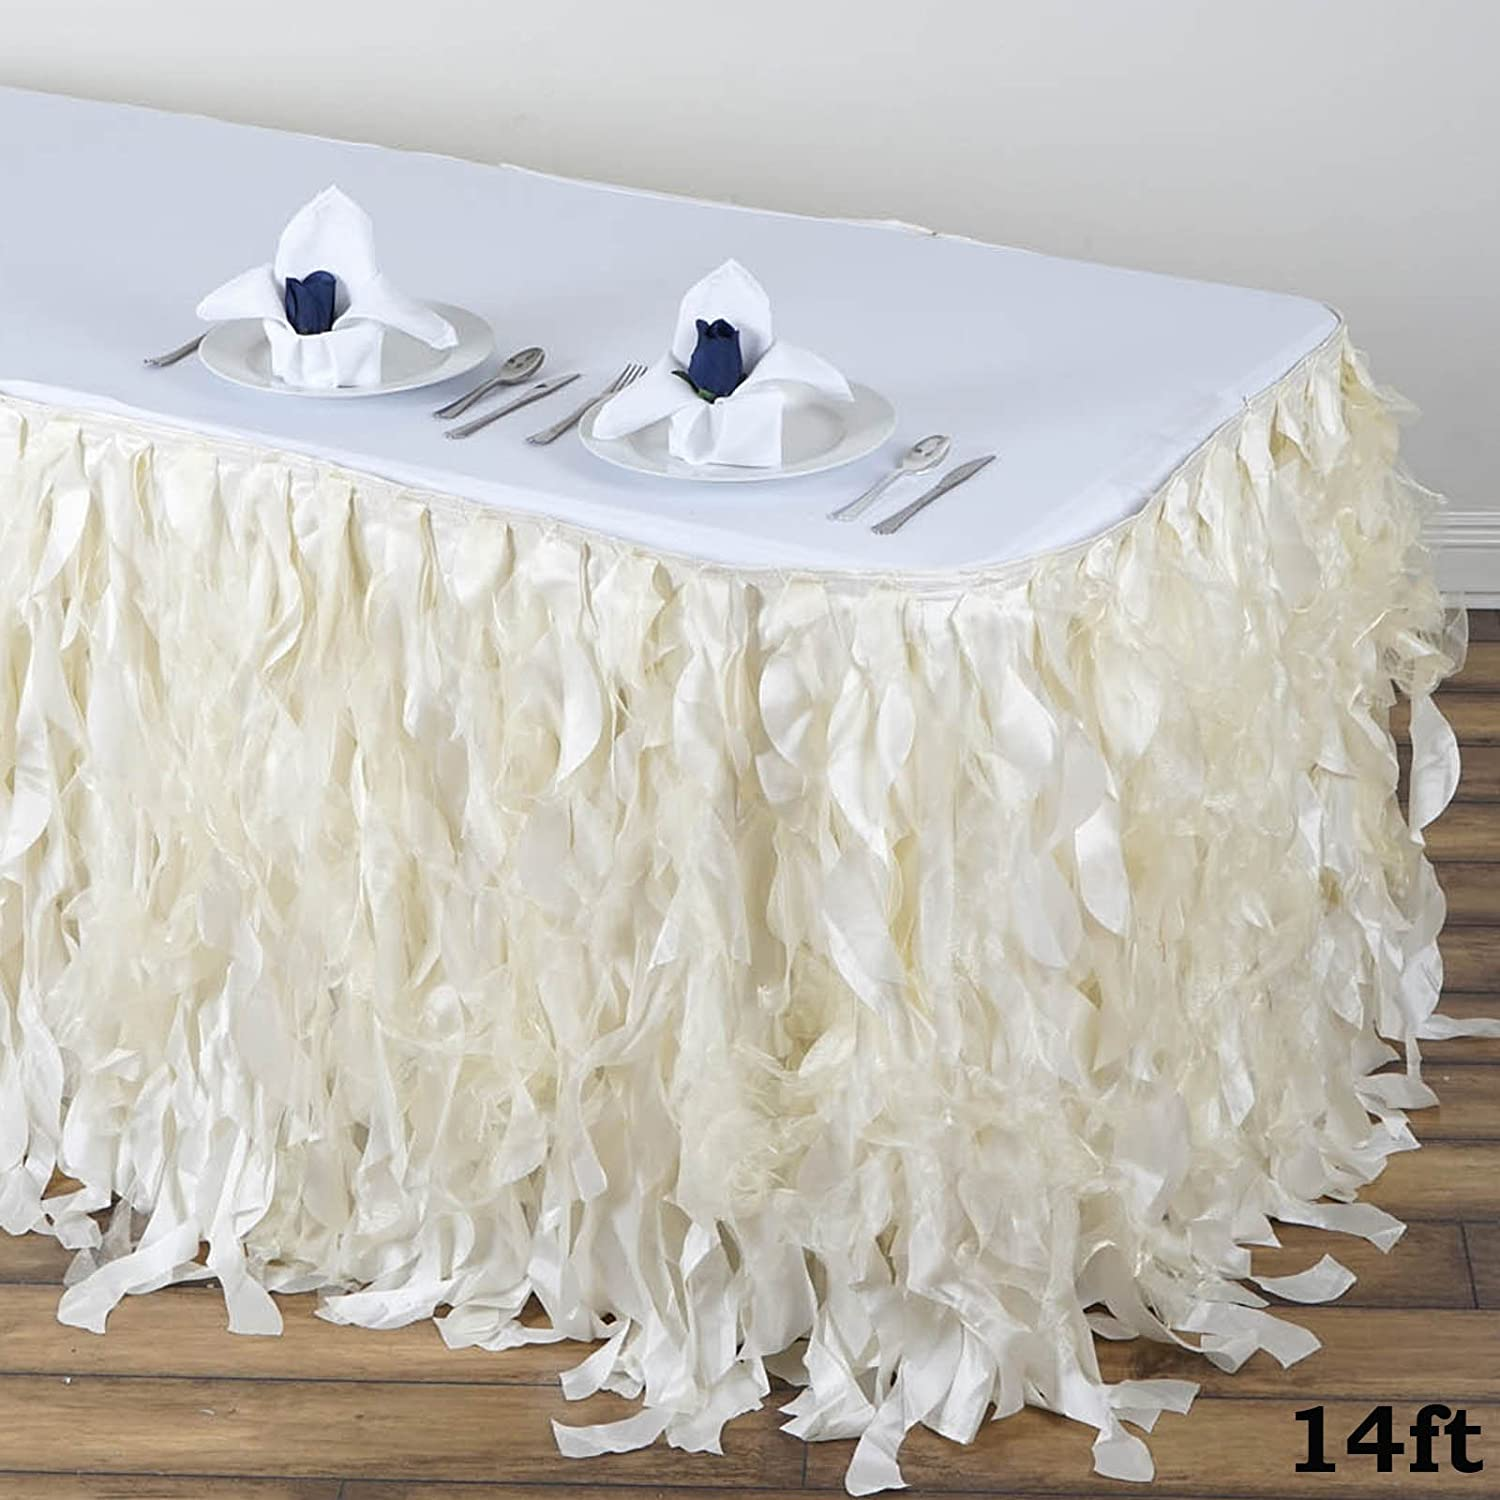 Black Efavormart 14ft Enchanting Curly Willow Taffeta Table Skirt for Kitchen Dining Catering Wedding Birthday Party Events